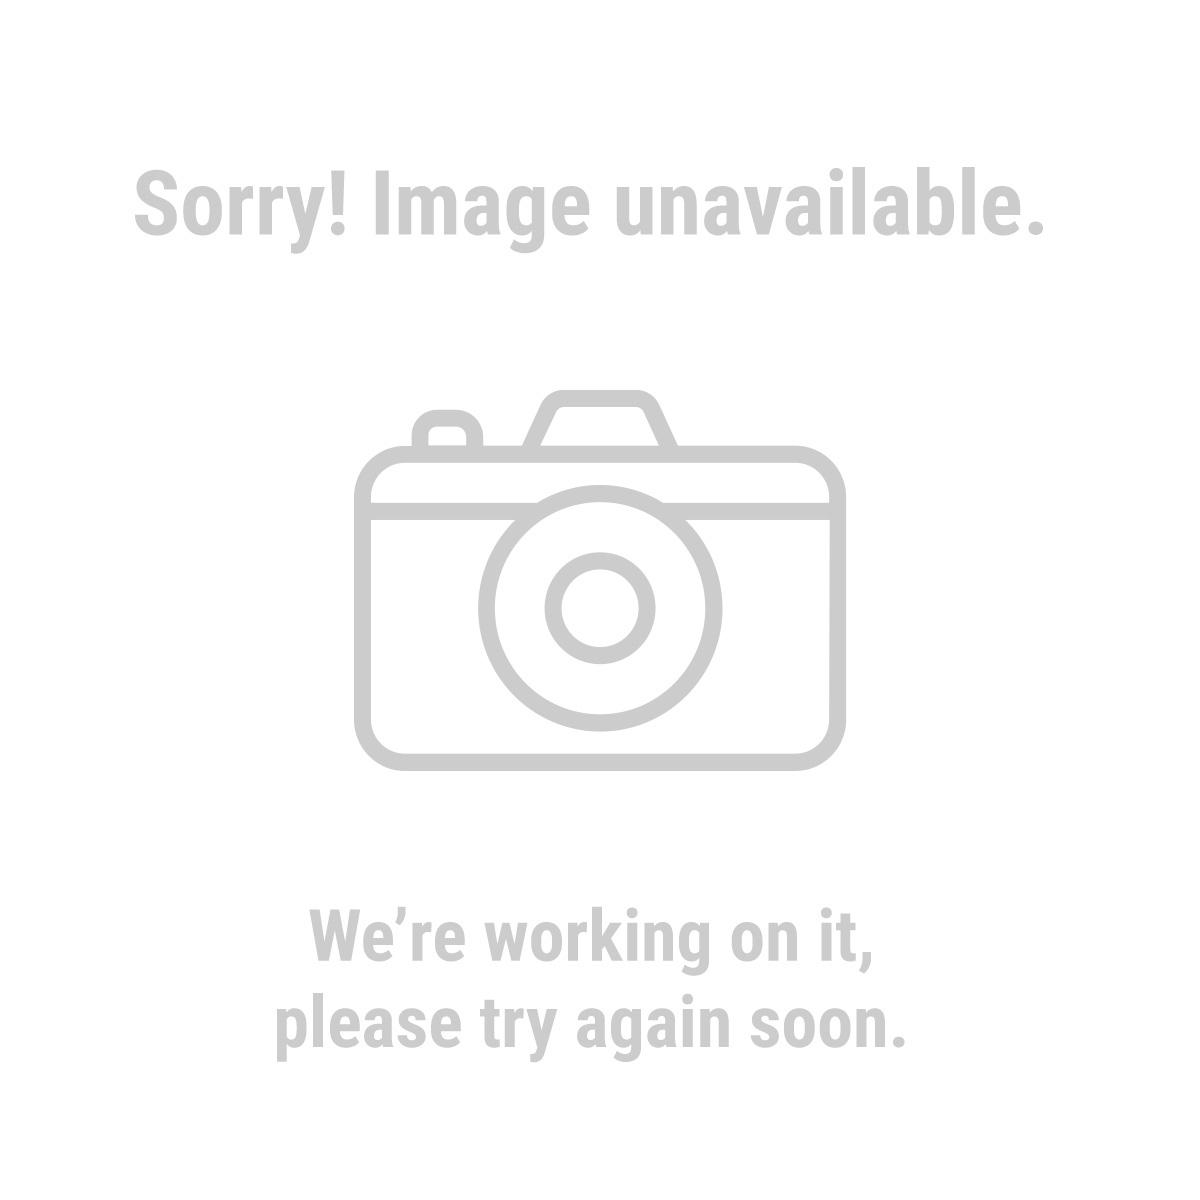 Western Safety 94876 2 Piece Yellow Rain Suit, XX-Large